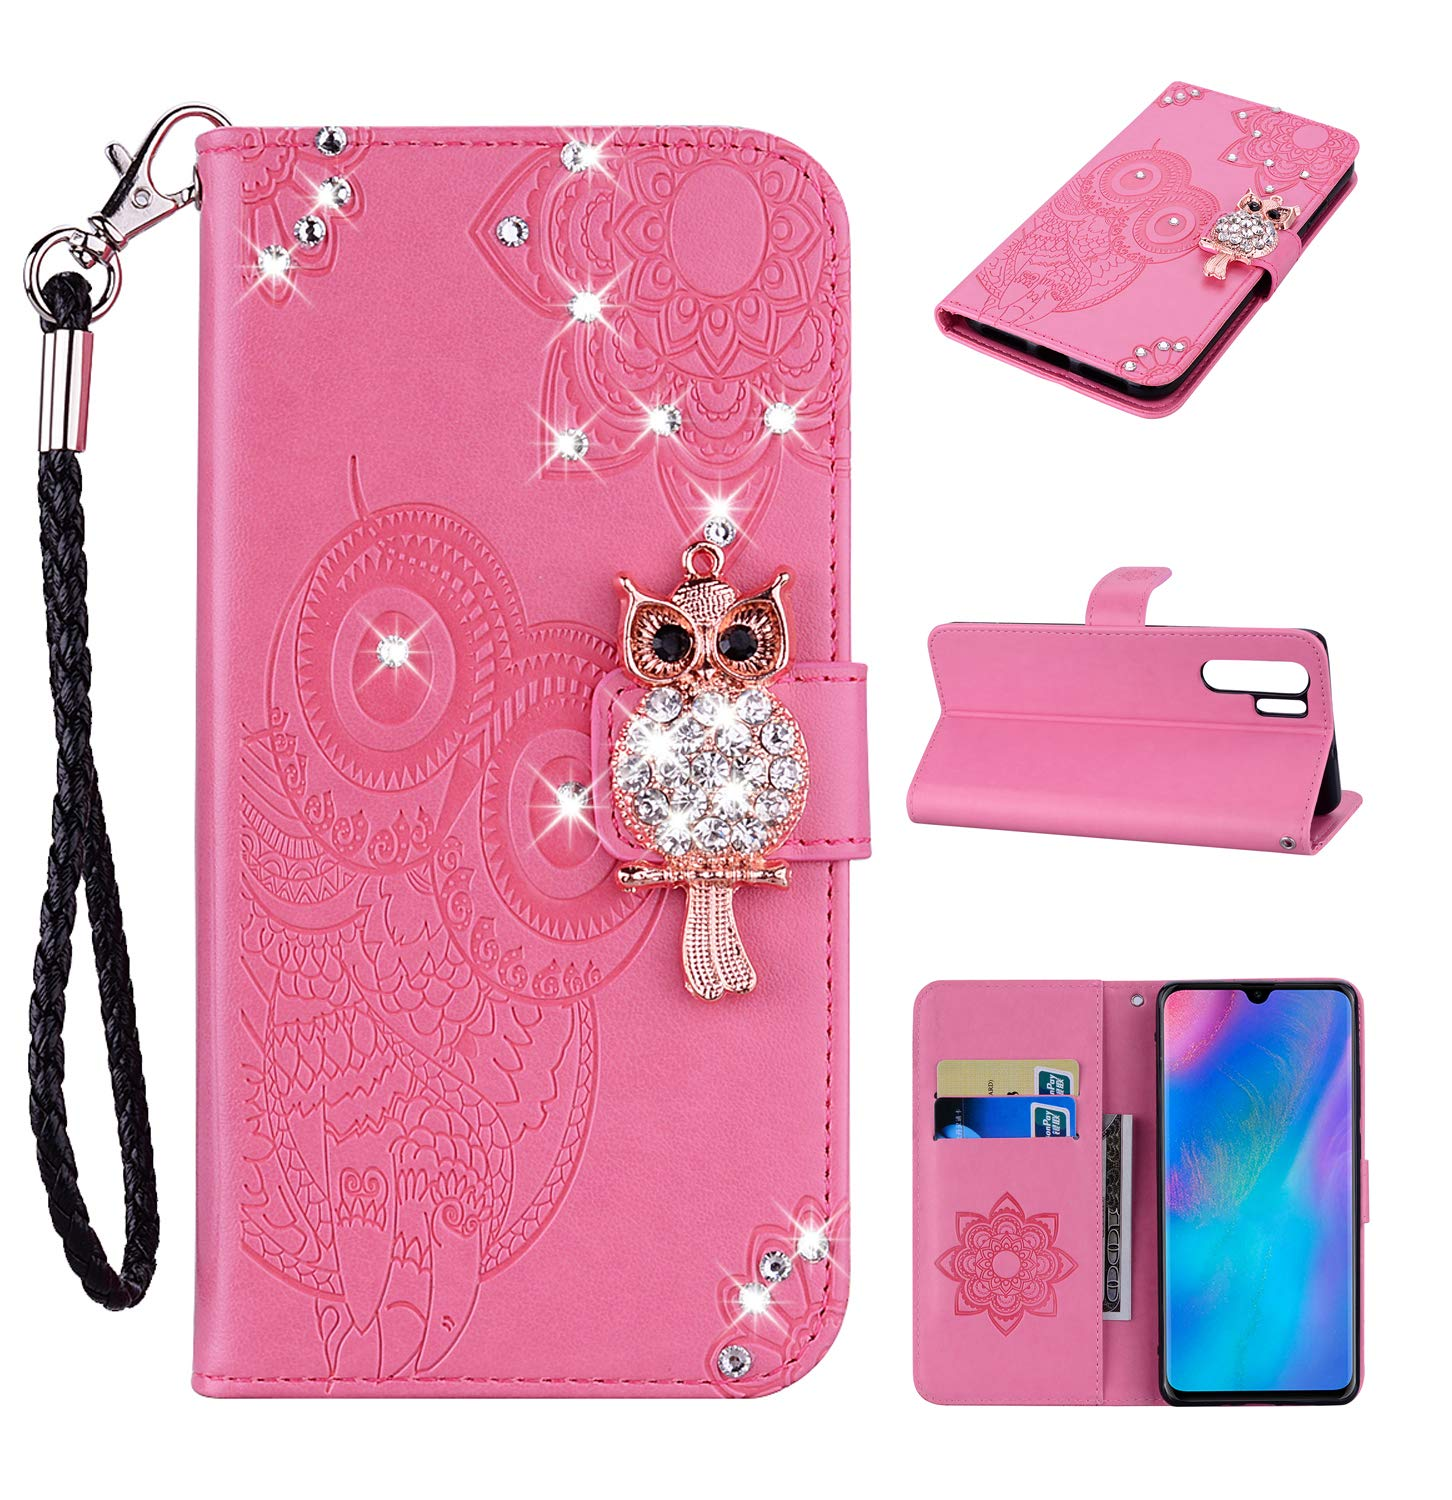 Amocase Wallet Case with 2 in 1 Stylus for Huawei P30 Pro,3D Bling Gems Owl Magnetic Mandala Embossing Premium Strap PU Leather Card Slot Stand Case for Huawei P30 Pro - Pink